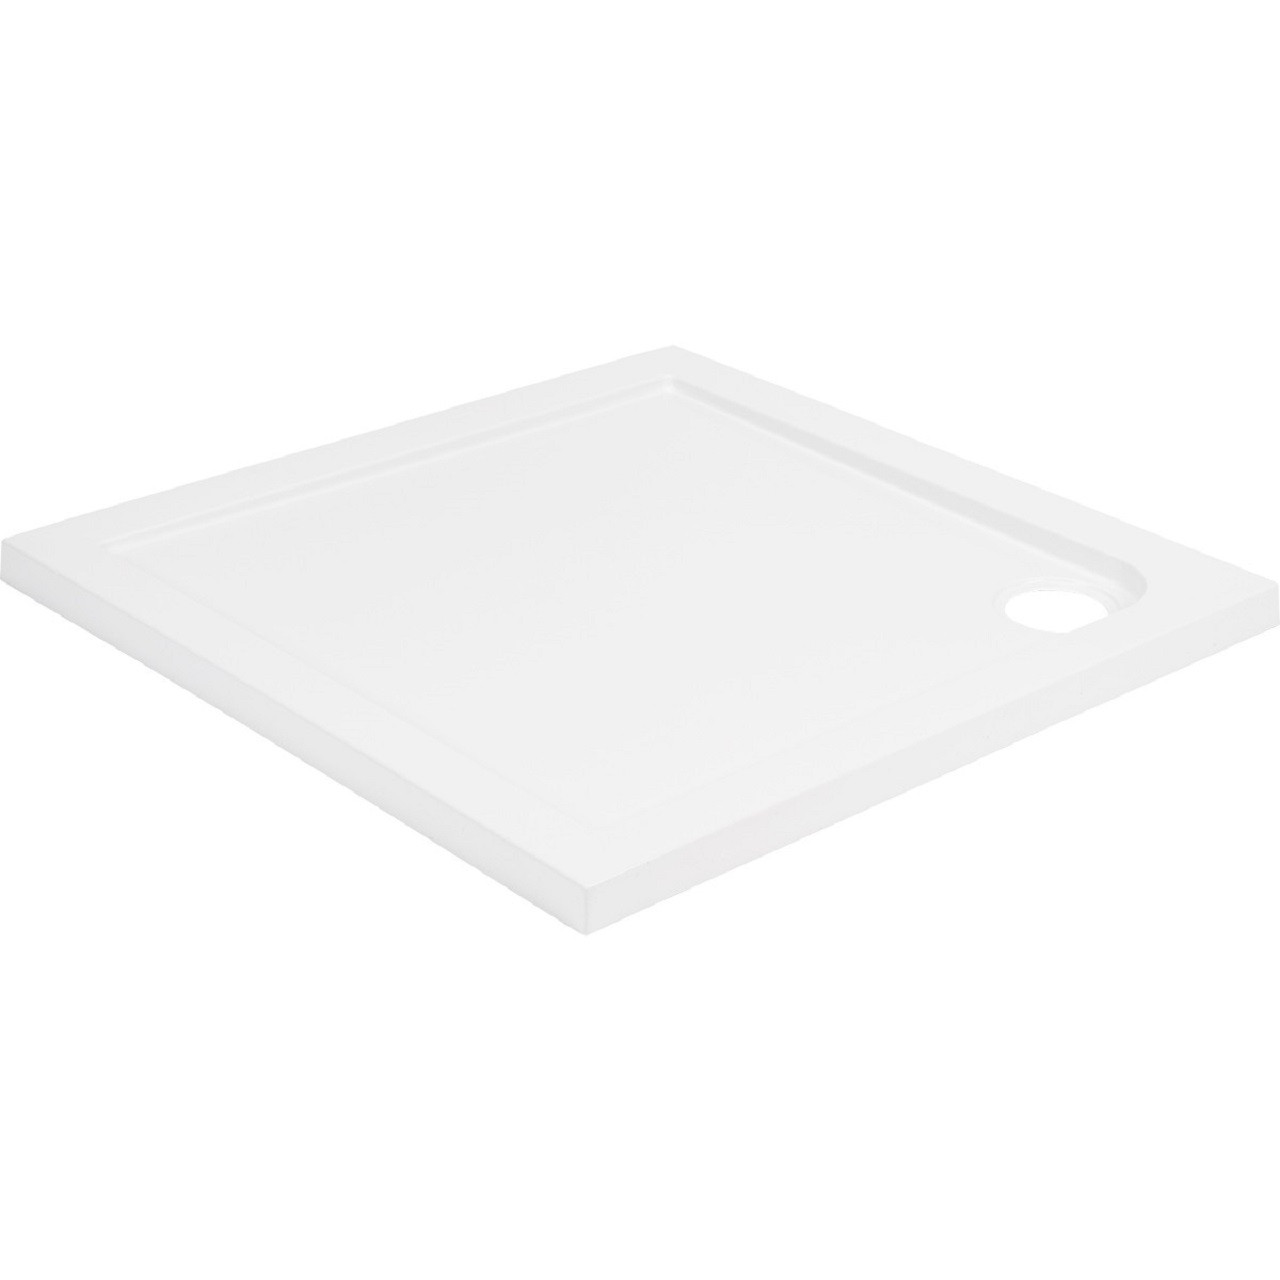 40mm Pearlstone 700 x 700 Square Shower Tray